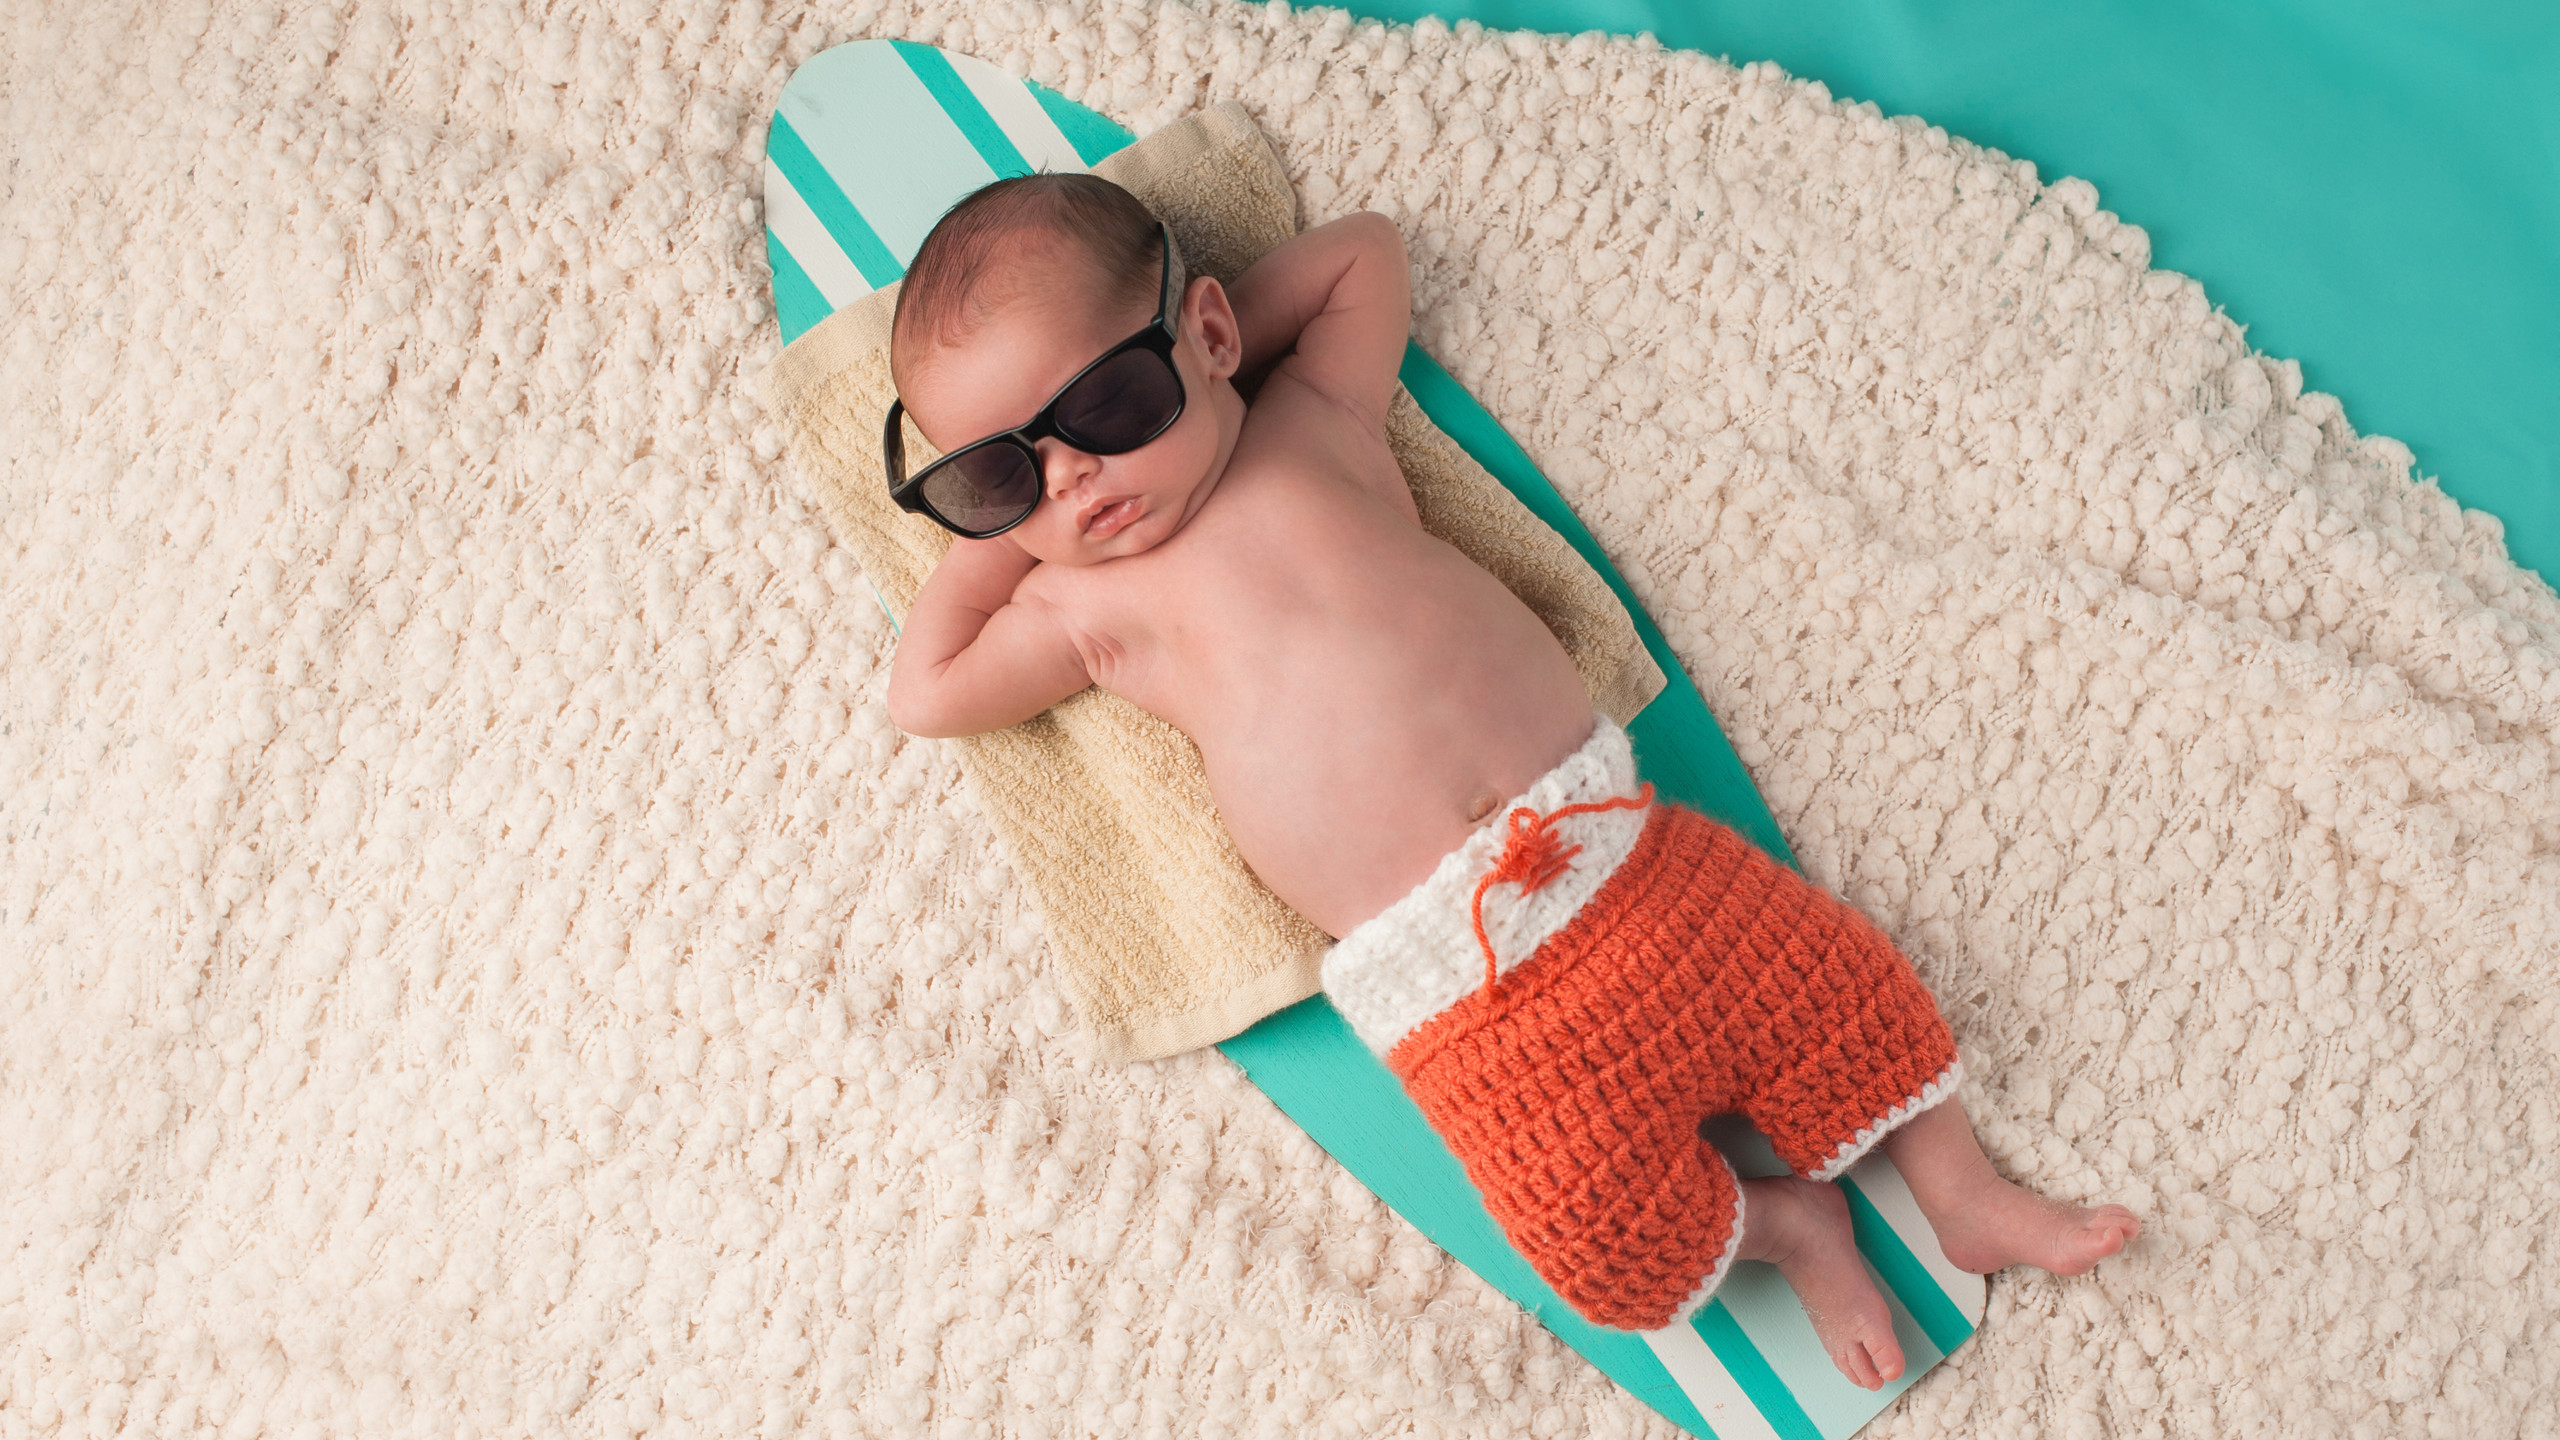 Newborn baby boy sleeping on a tiny surfboard.jpg He is wearing black sunglasses and crocheted boardshorts